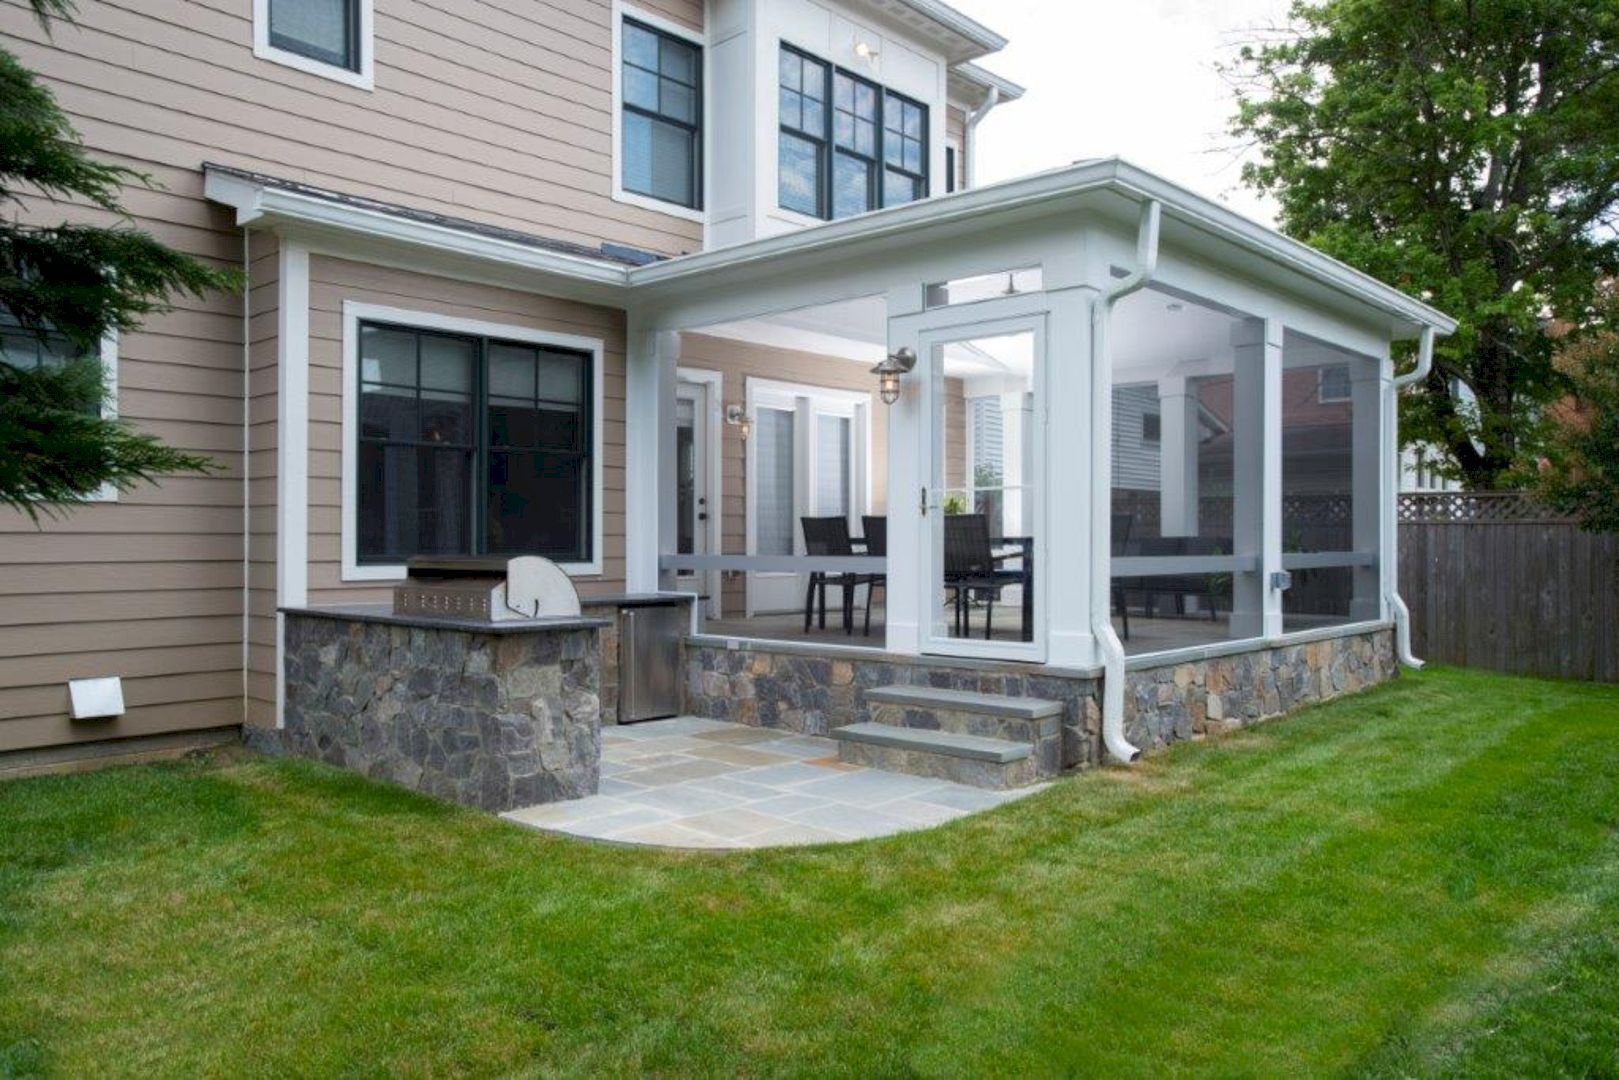 8 Ways To Have More Appealing Screened Porch Deck Screened Porch Designs Porch Design Screened In Patio